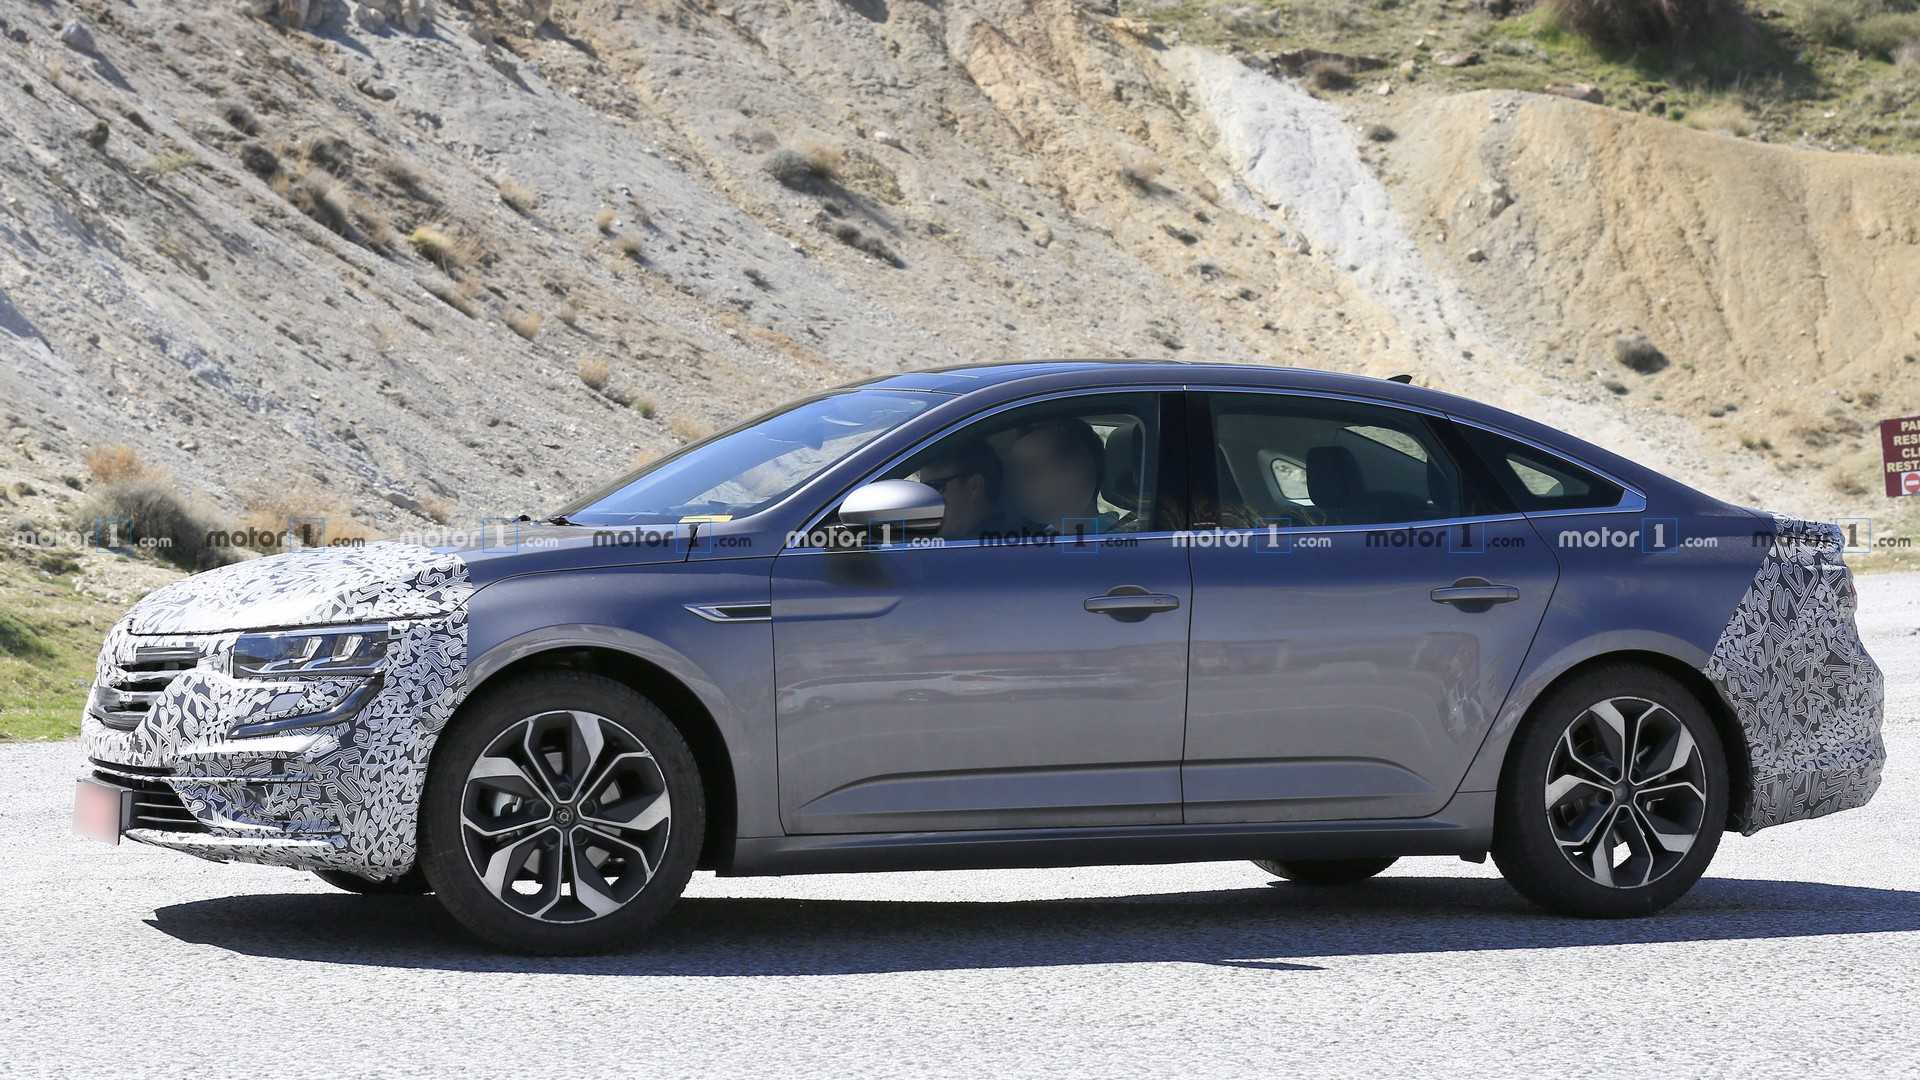 67 New Renault Talisman 2020 Price And Release Date